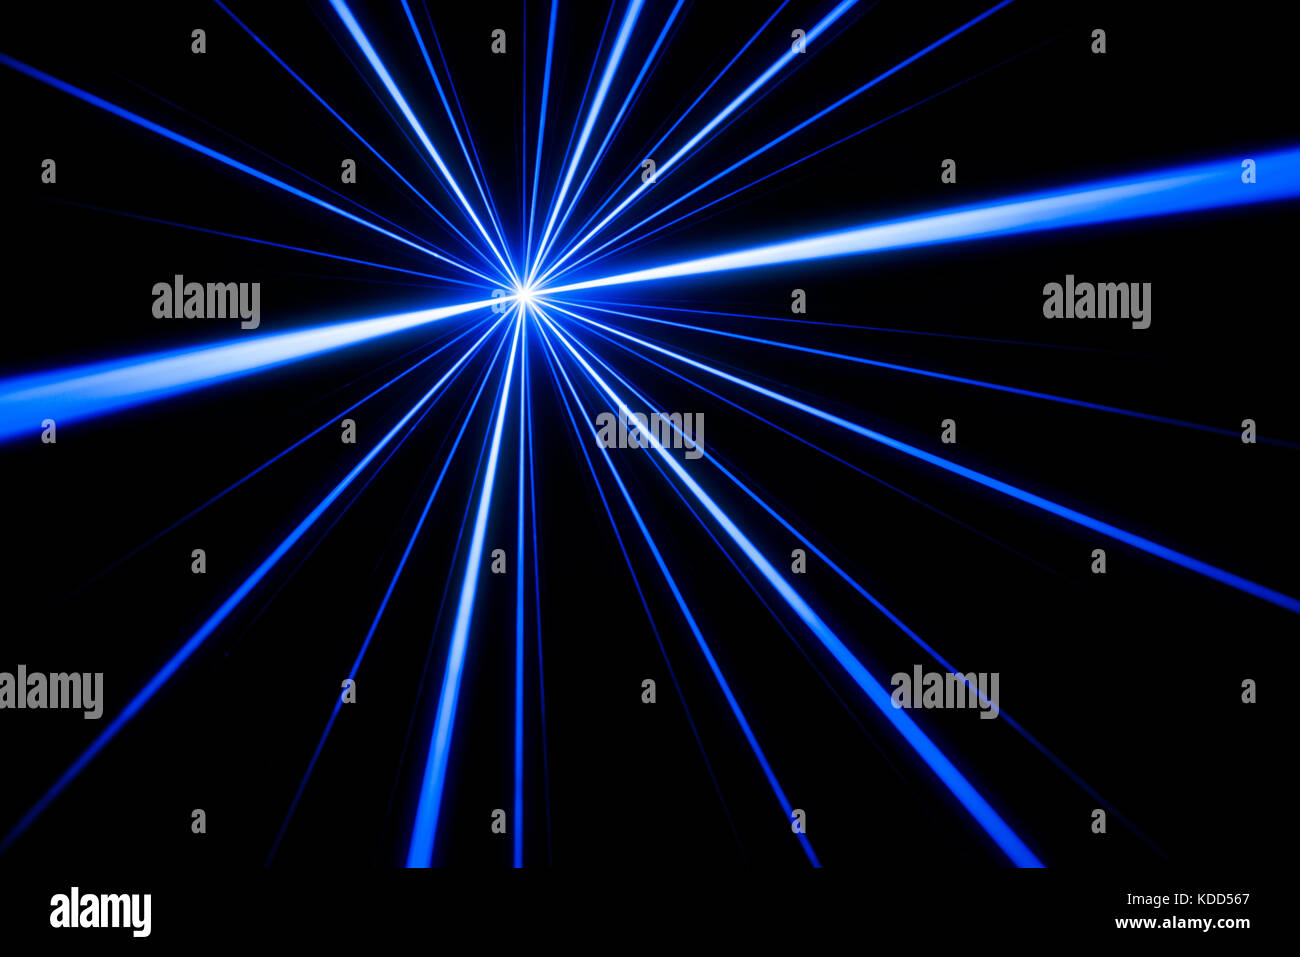 Fancy Club Light Effects In A Dark Background Stock: Blue Laser Beam Light Effect On Black Background, Photo